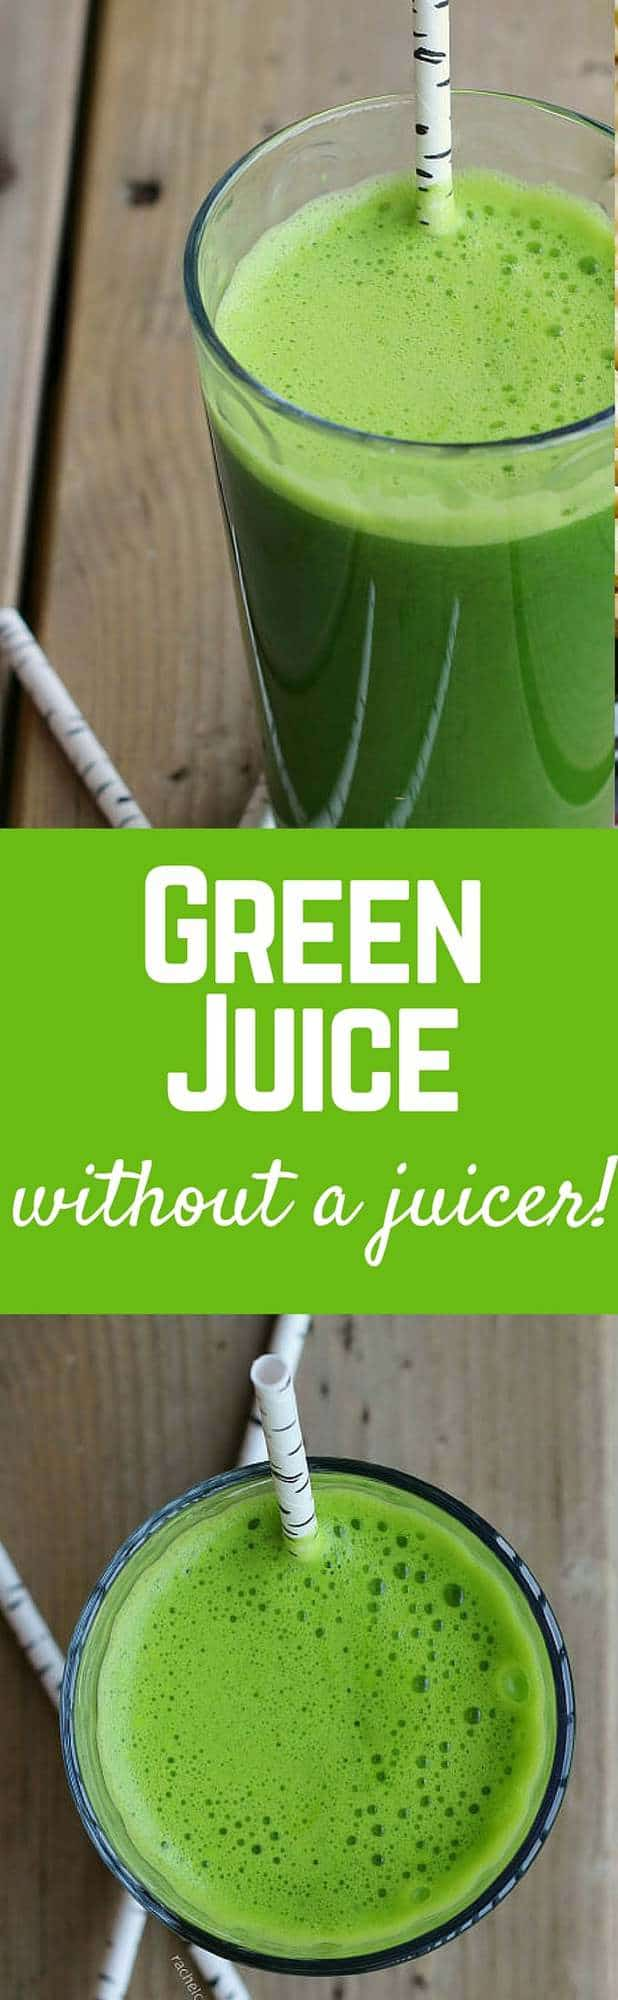 Green Juice Without a Juicer! - Get the easy method and healthy recipe on RachelCooks.com